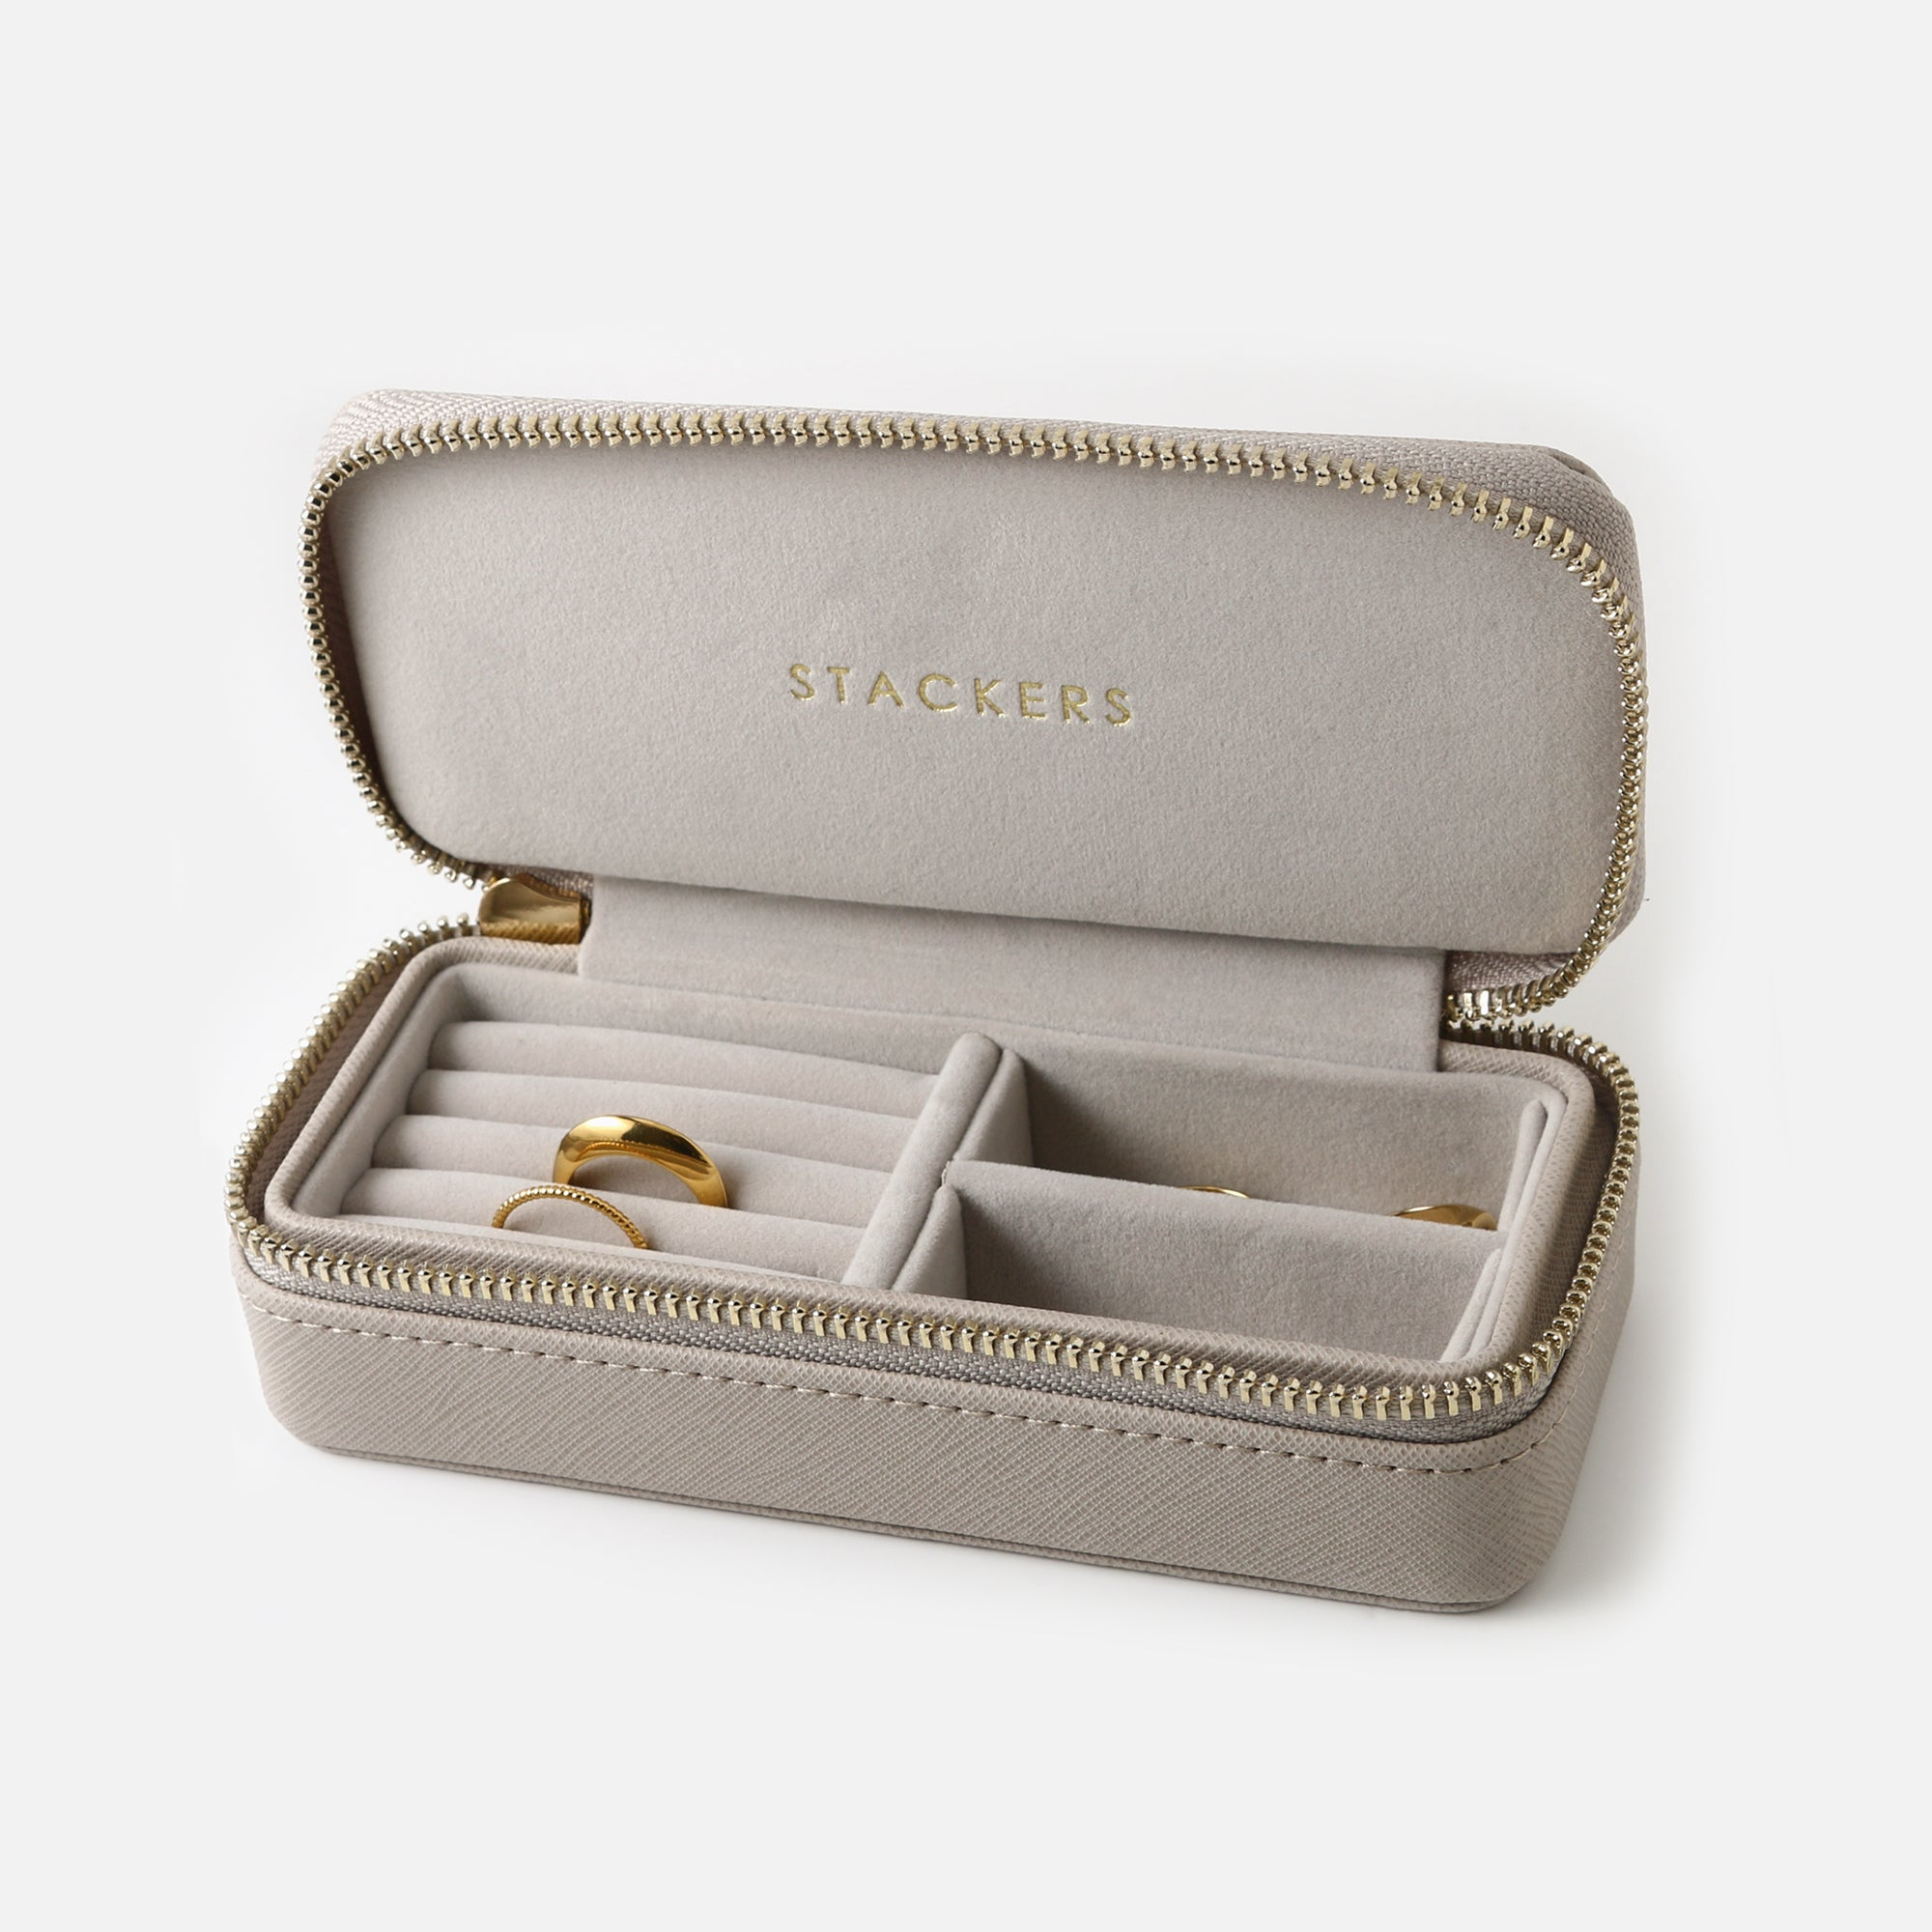 Stackers Medium Travel Jewellery Box - Taupe